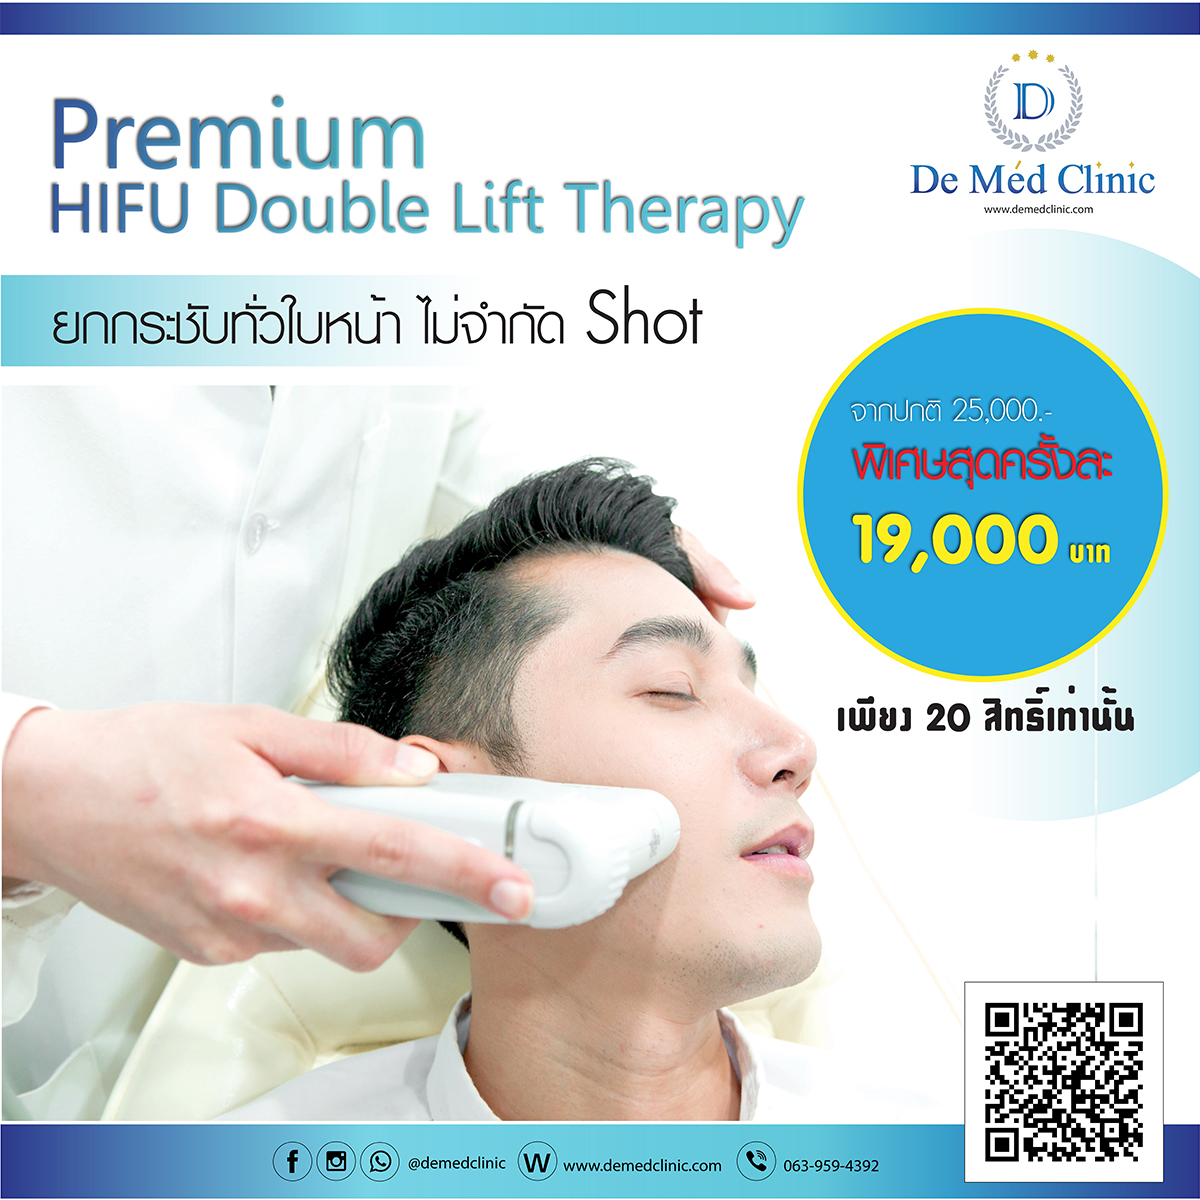 http://line.me/ti/p/@Demedclinic